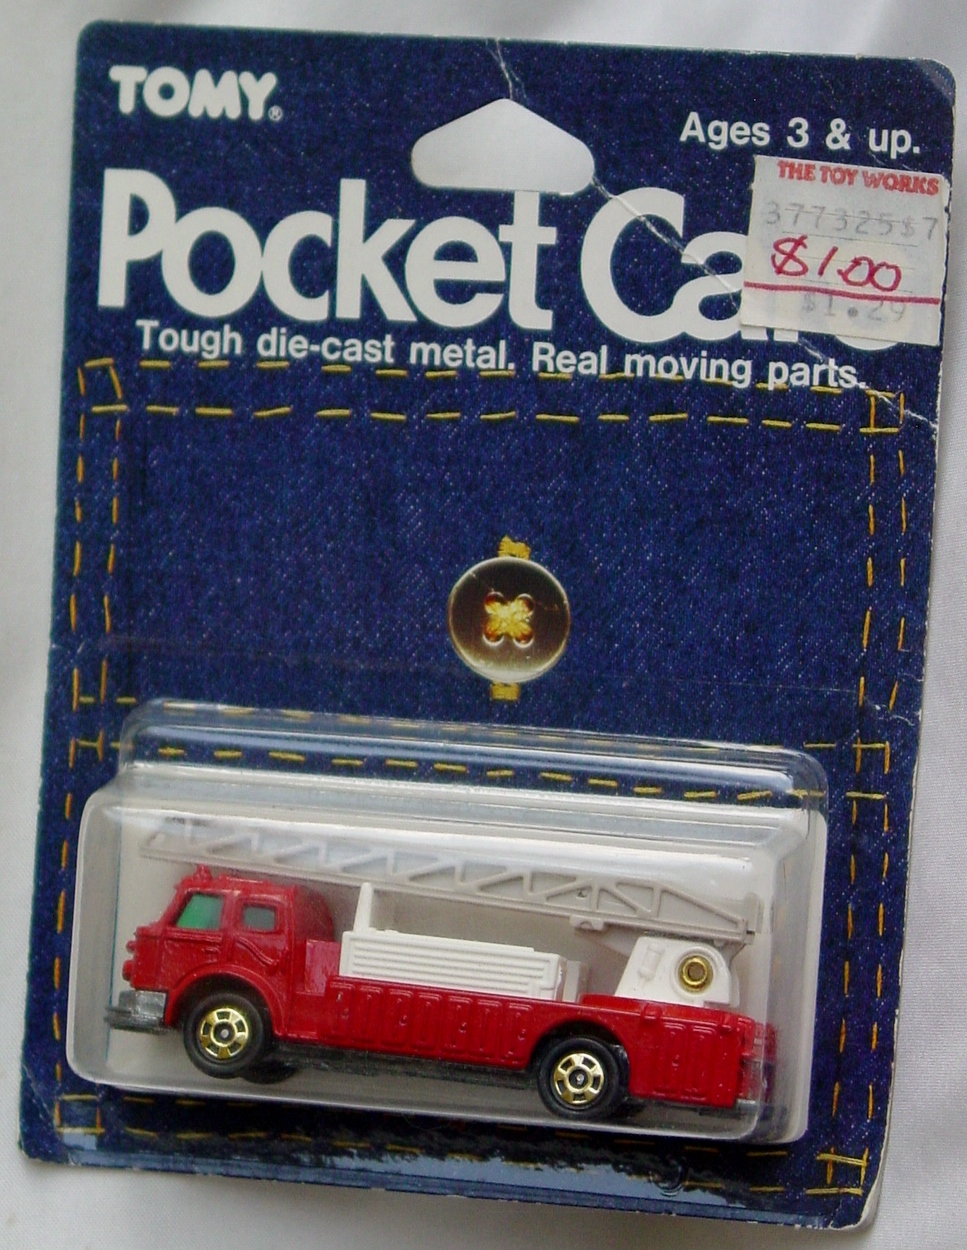 64 - TOMY POCKET CARS F33 Ladder Fire Truck